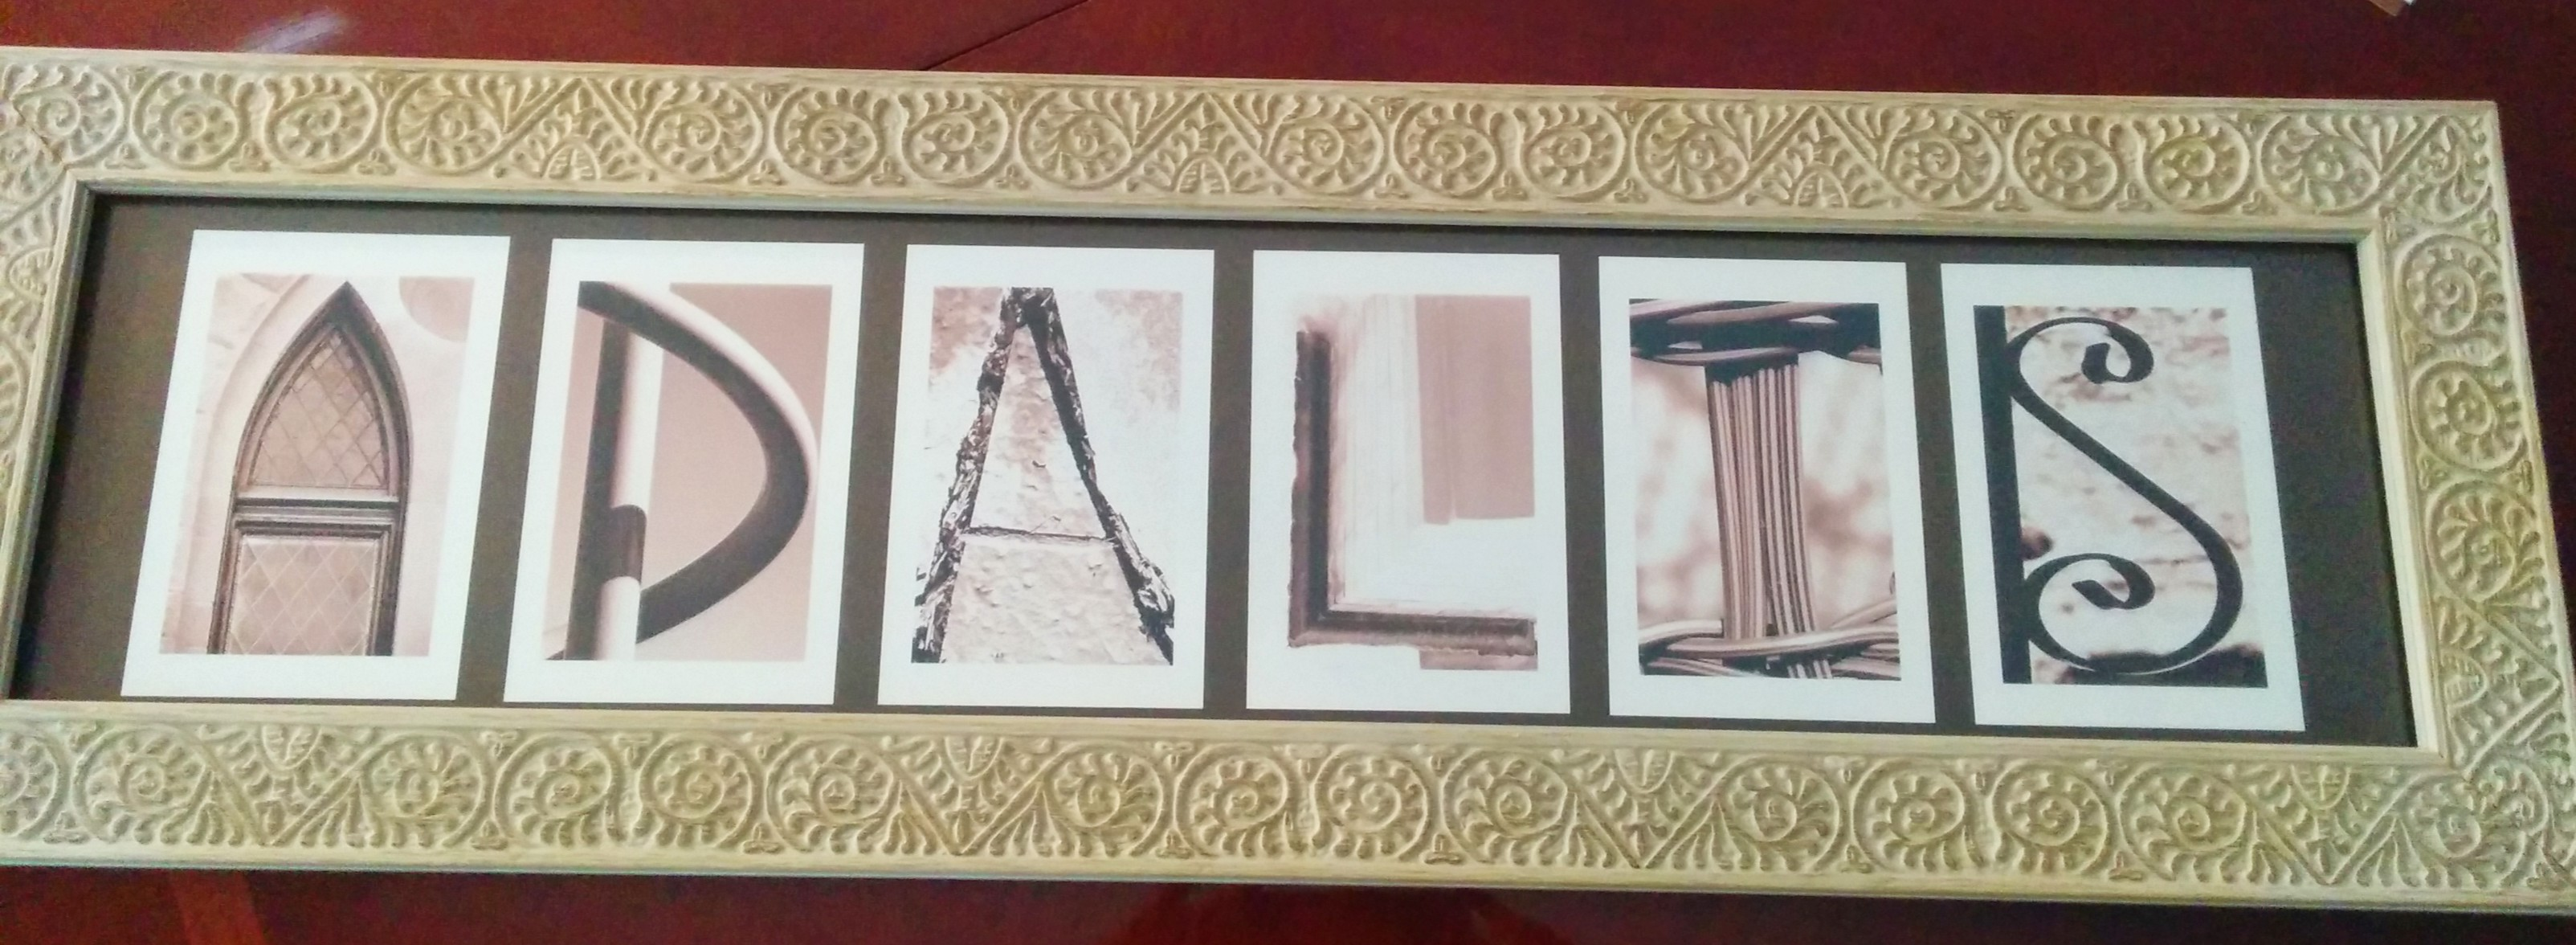 Personalized gifts you can make yourself lacy nicole personalized gifts you can make over and over personalizedgift solutioingenieria Images